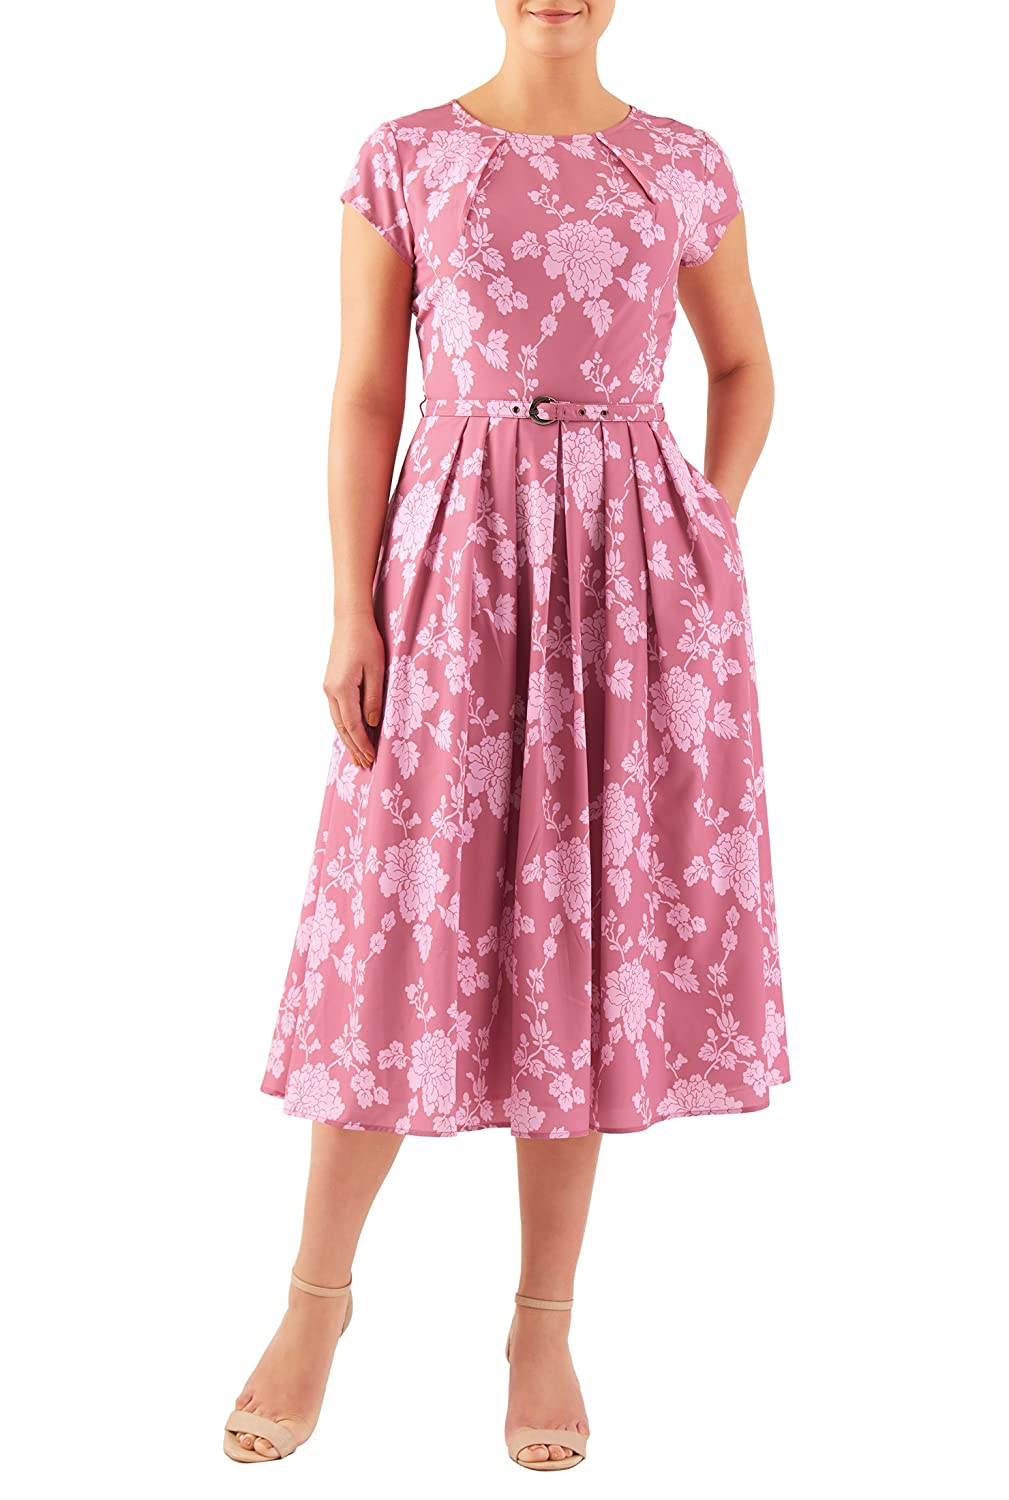 Plus Size Retro Dresses eShakti Womens Pleat neck belted floral print crepe dress $59.95 AT vintagedancer.com